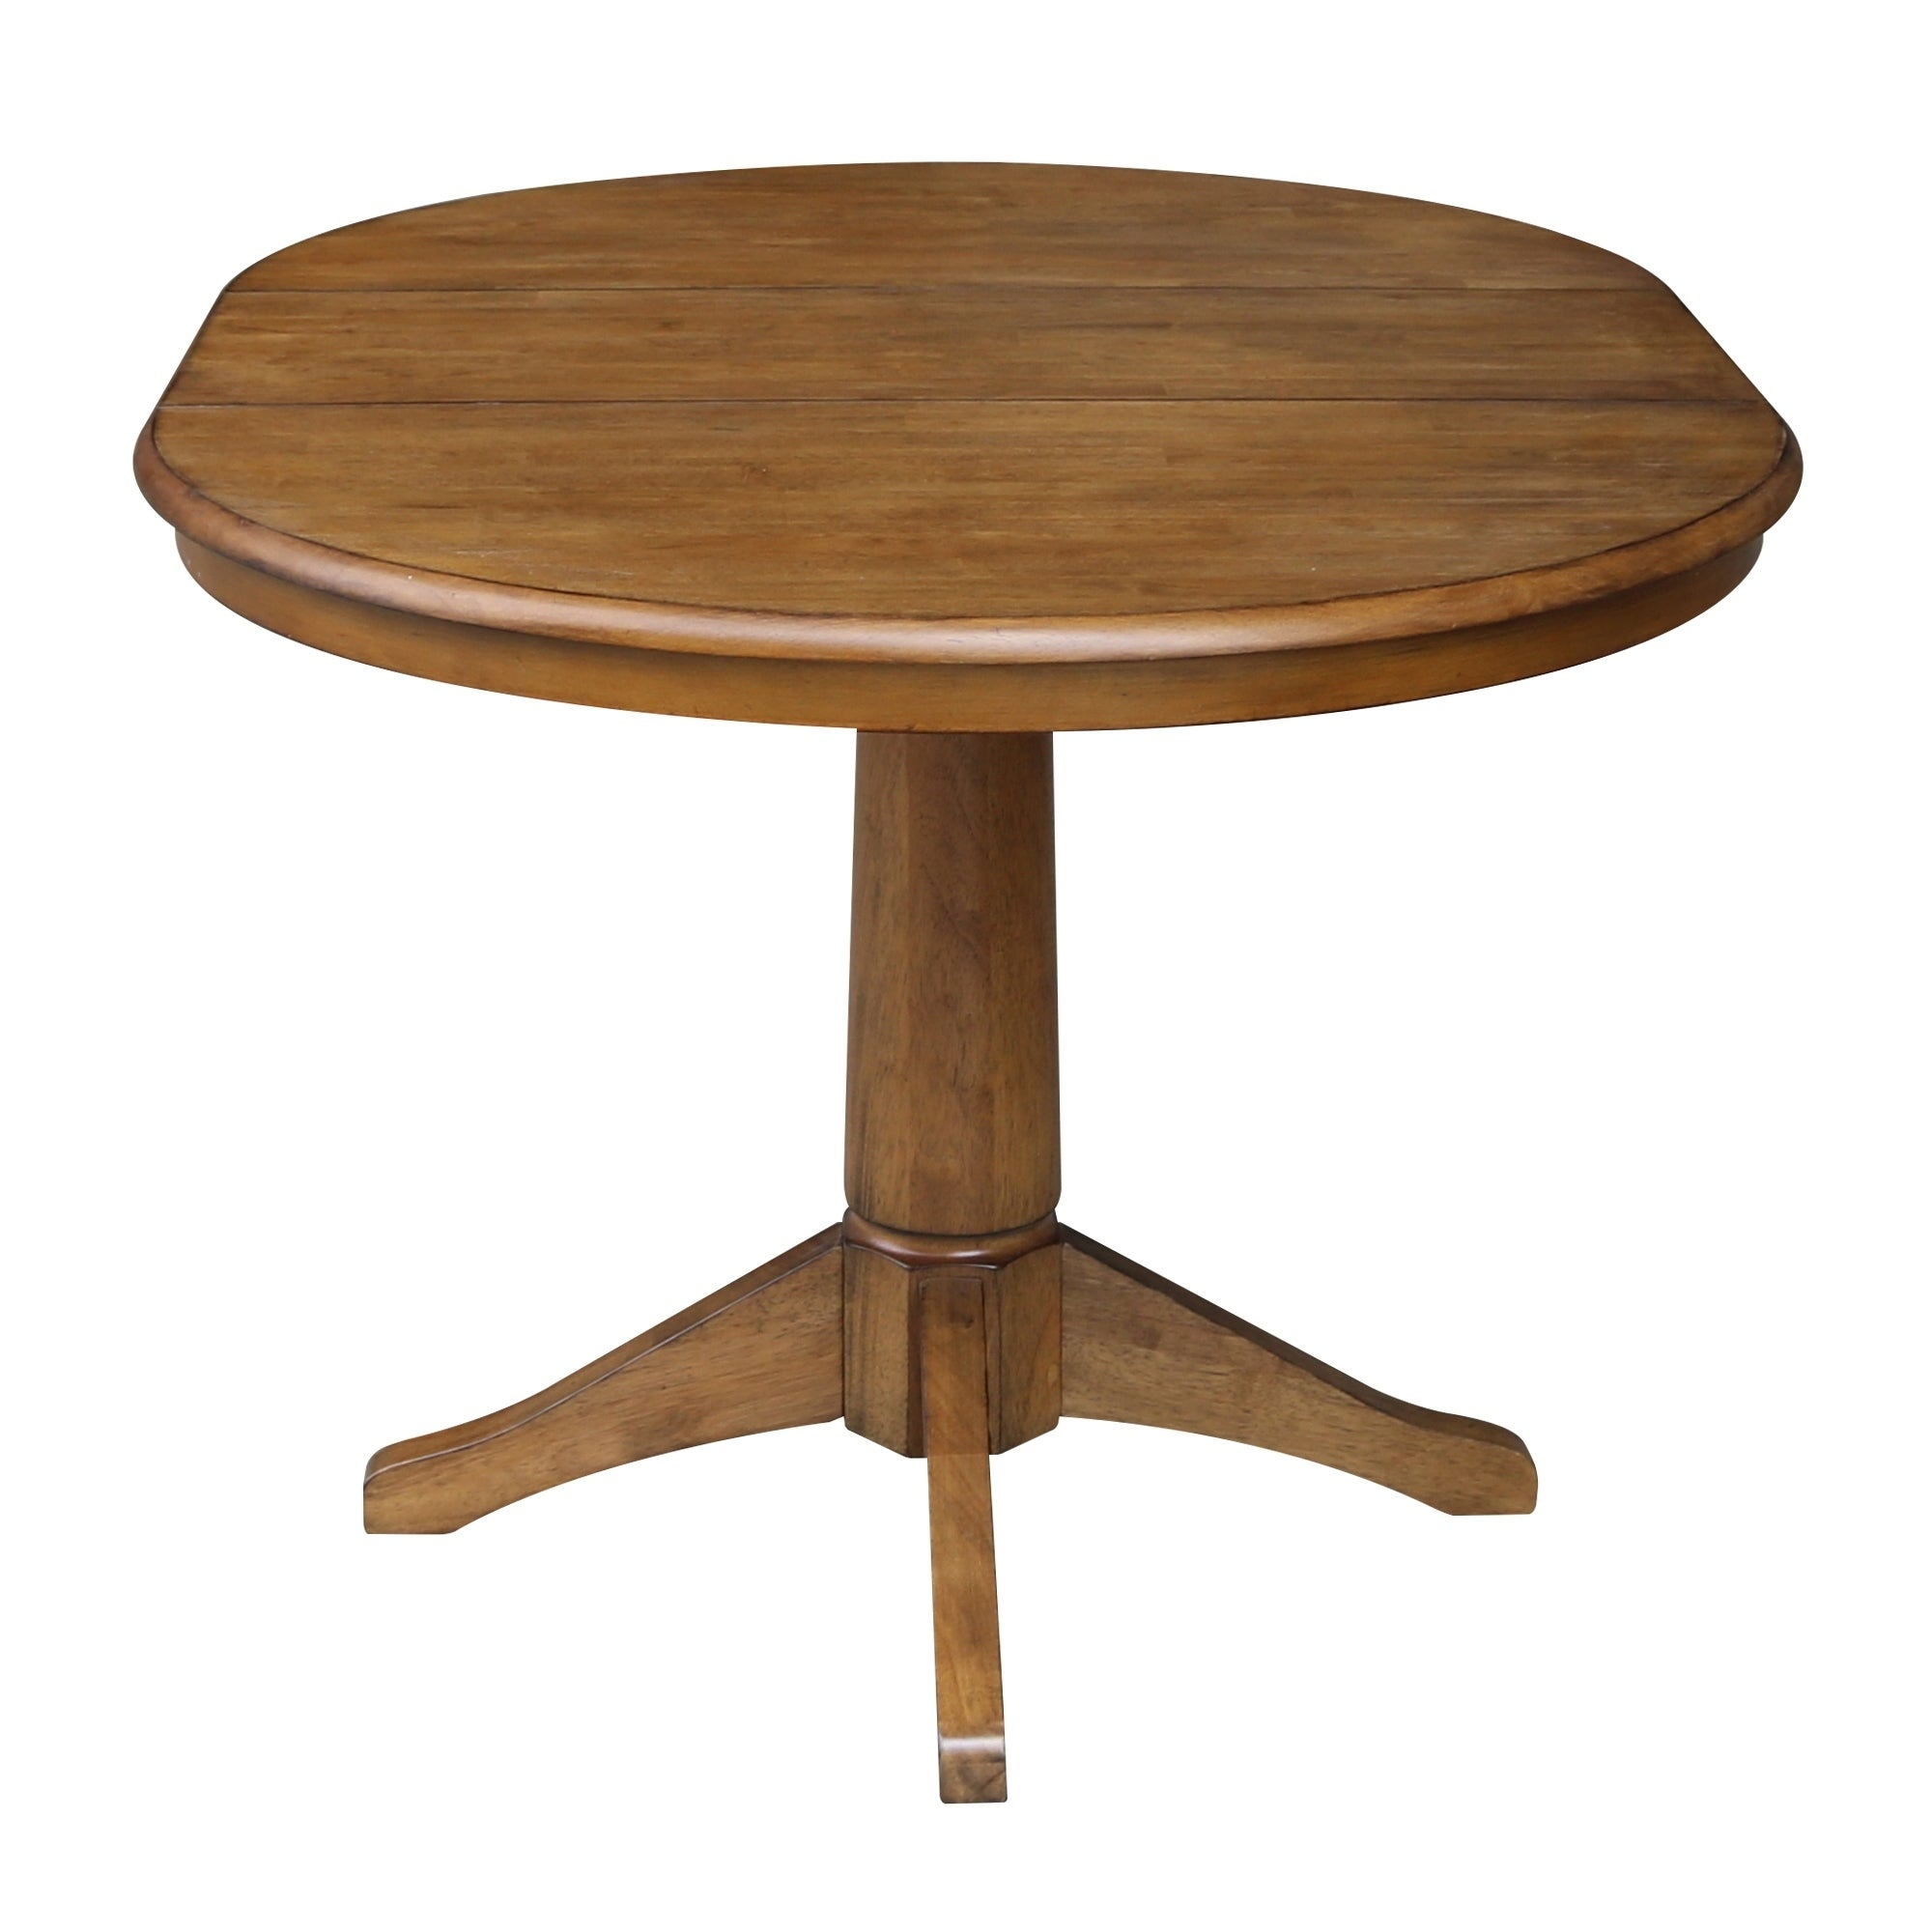 36 Round Pedestal Dining Table With 12 Leaf Pecan Free Shipping Today 22815520